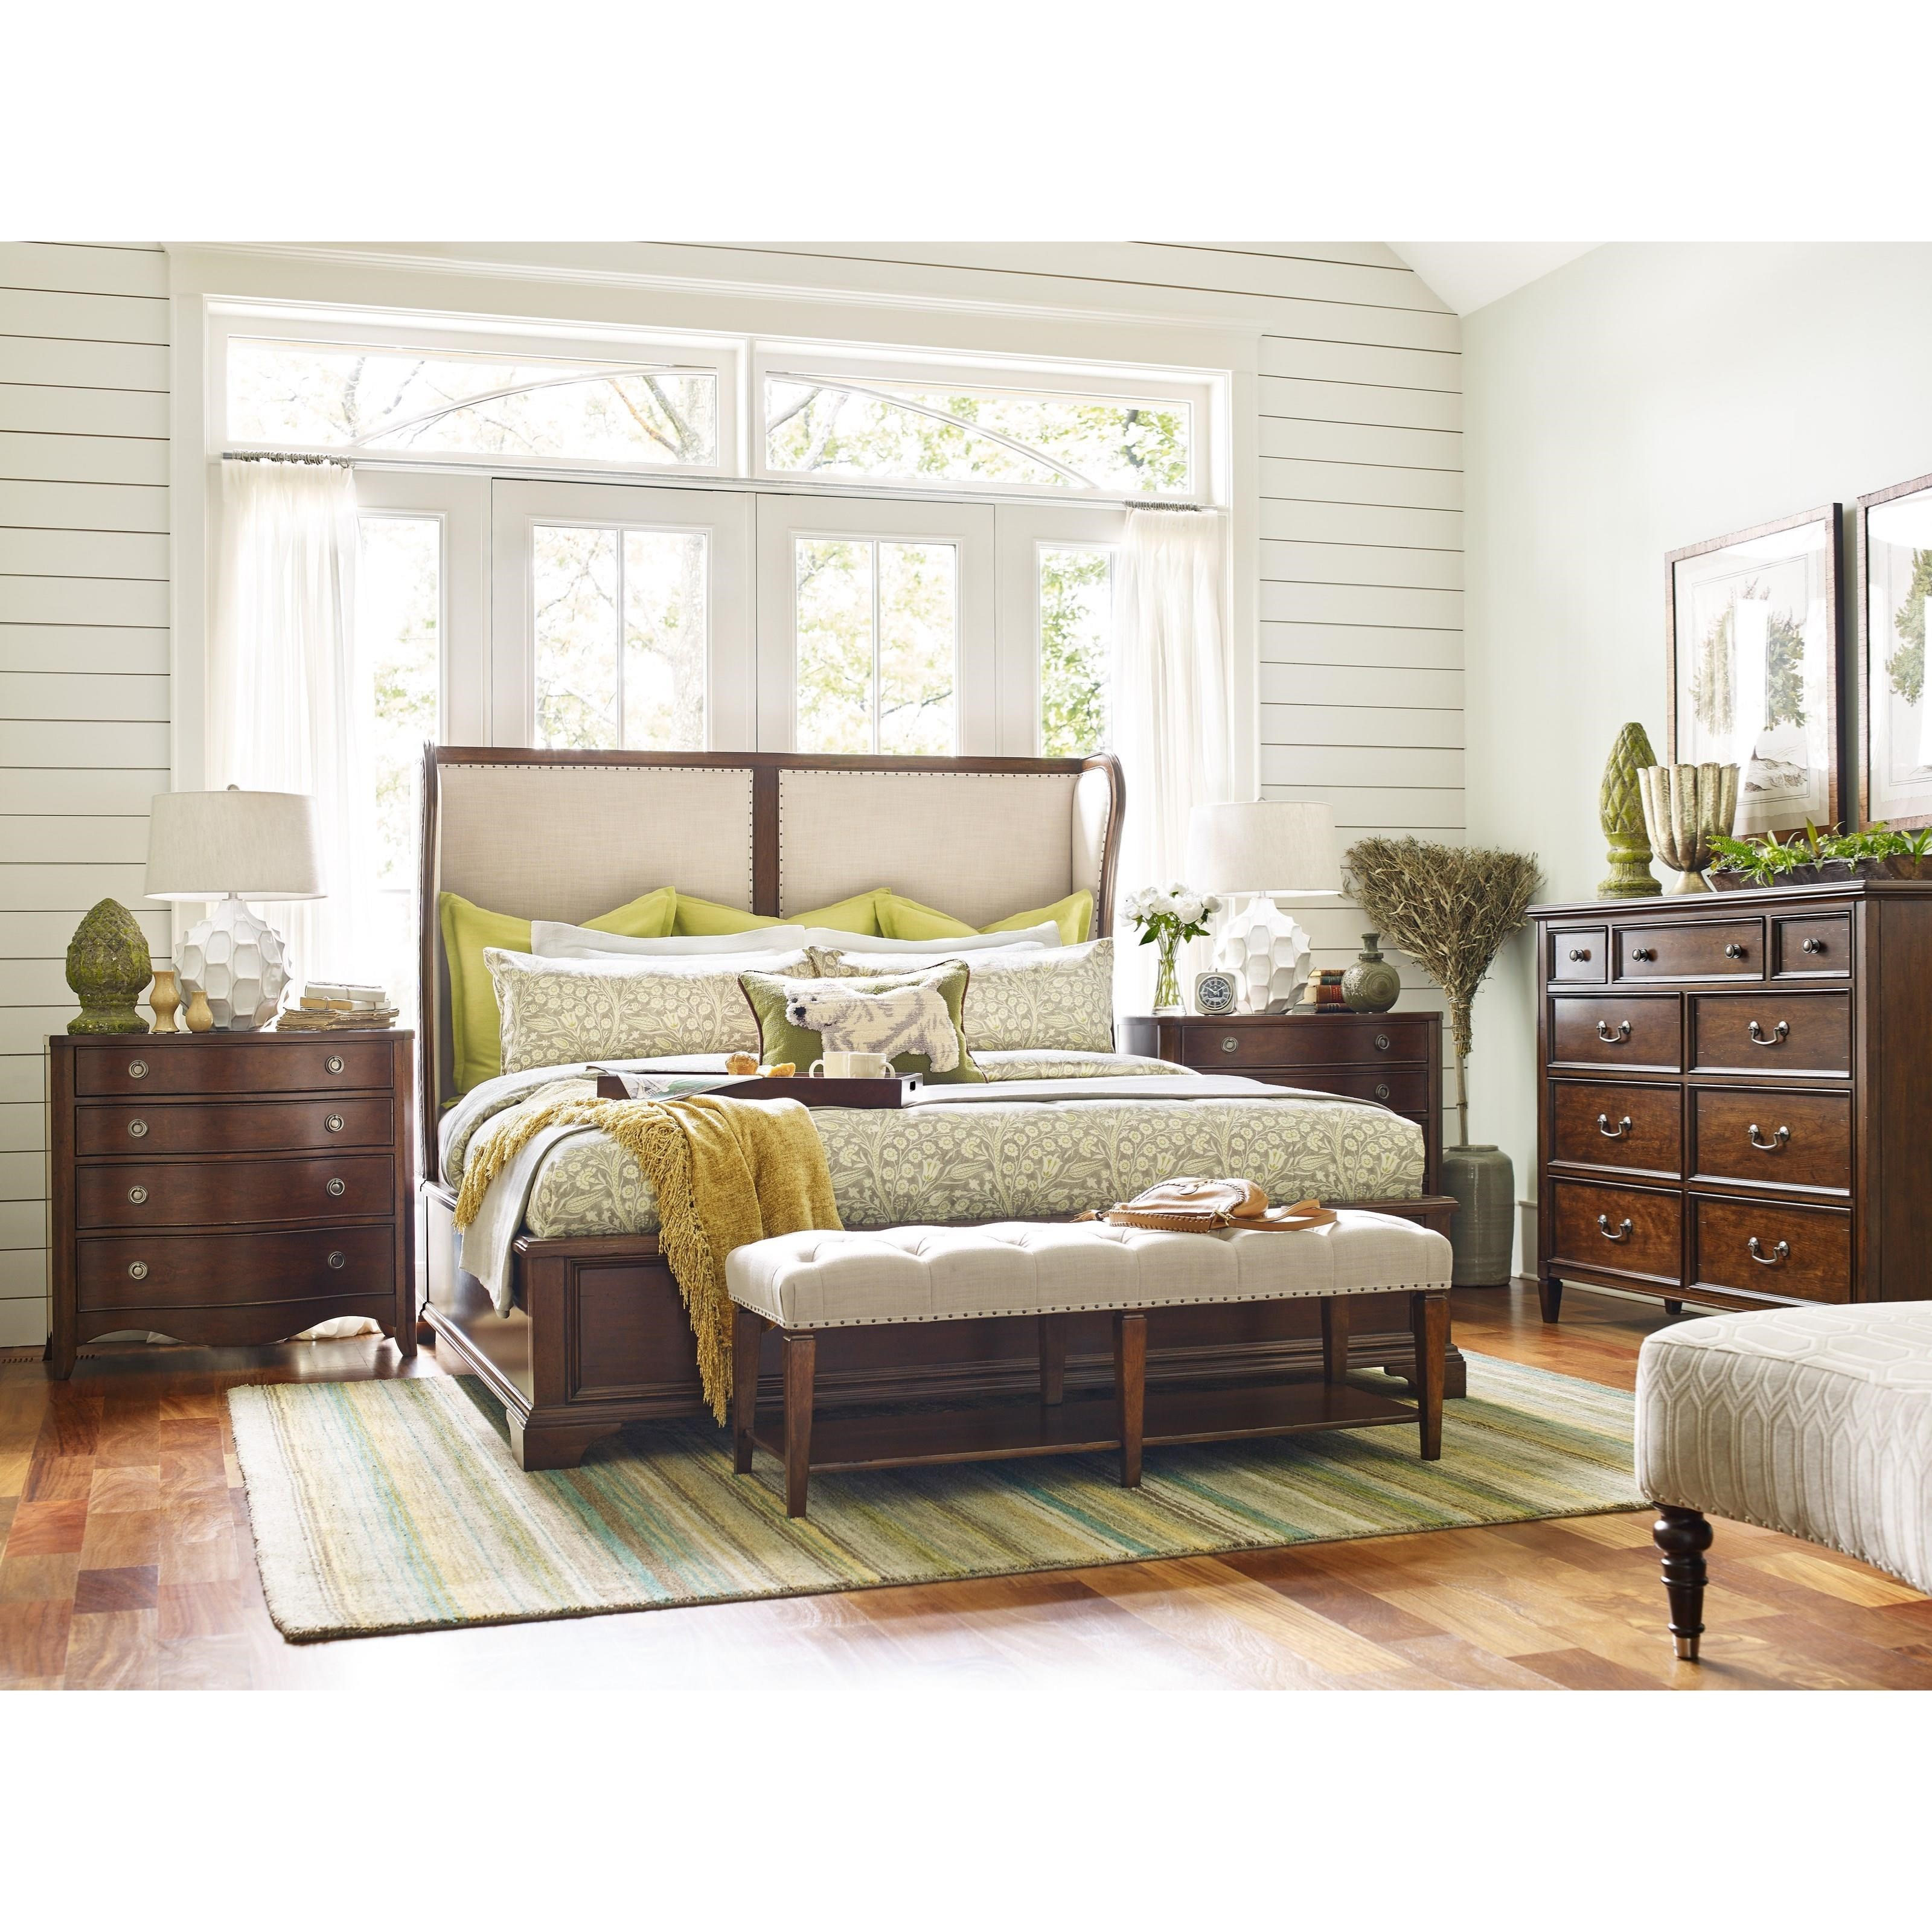 Rachael Ray Home by Legacy Classic Upstate King Bedroom Group - Item Number: LEGA-GRP-6040-KINGSUITE